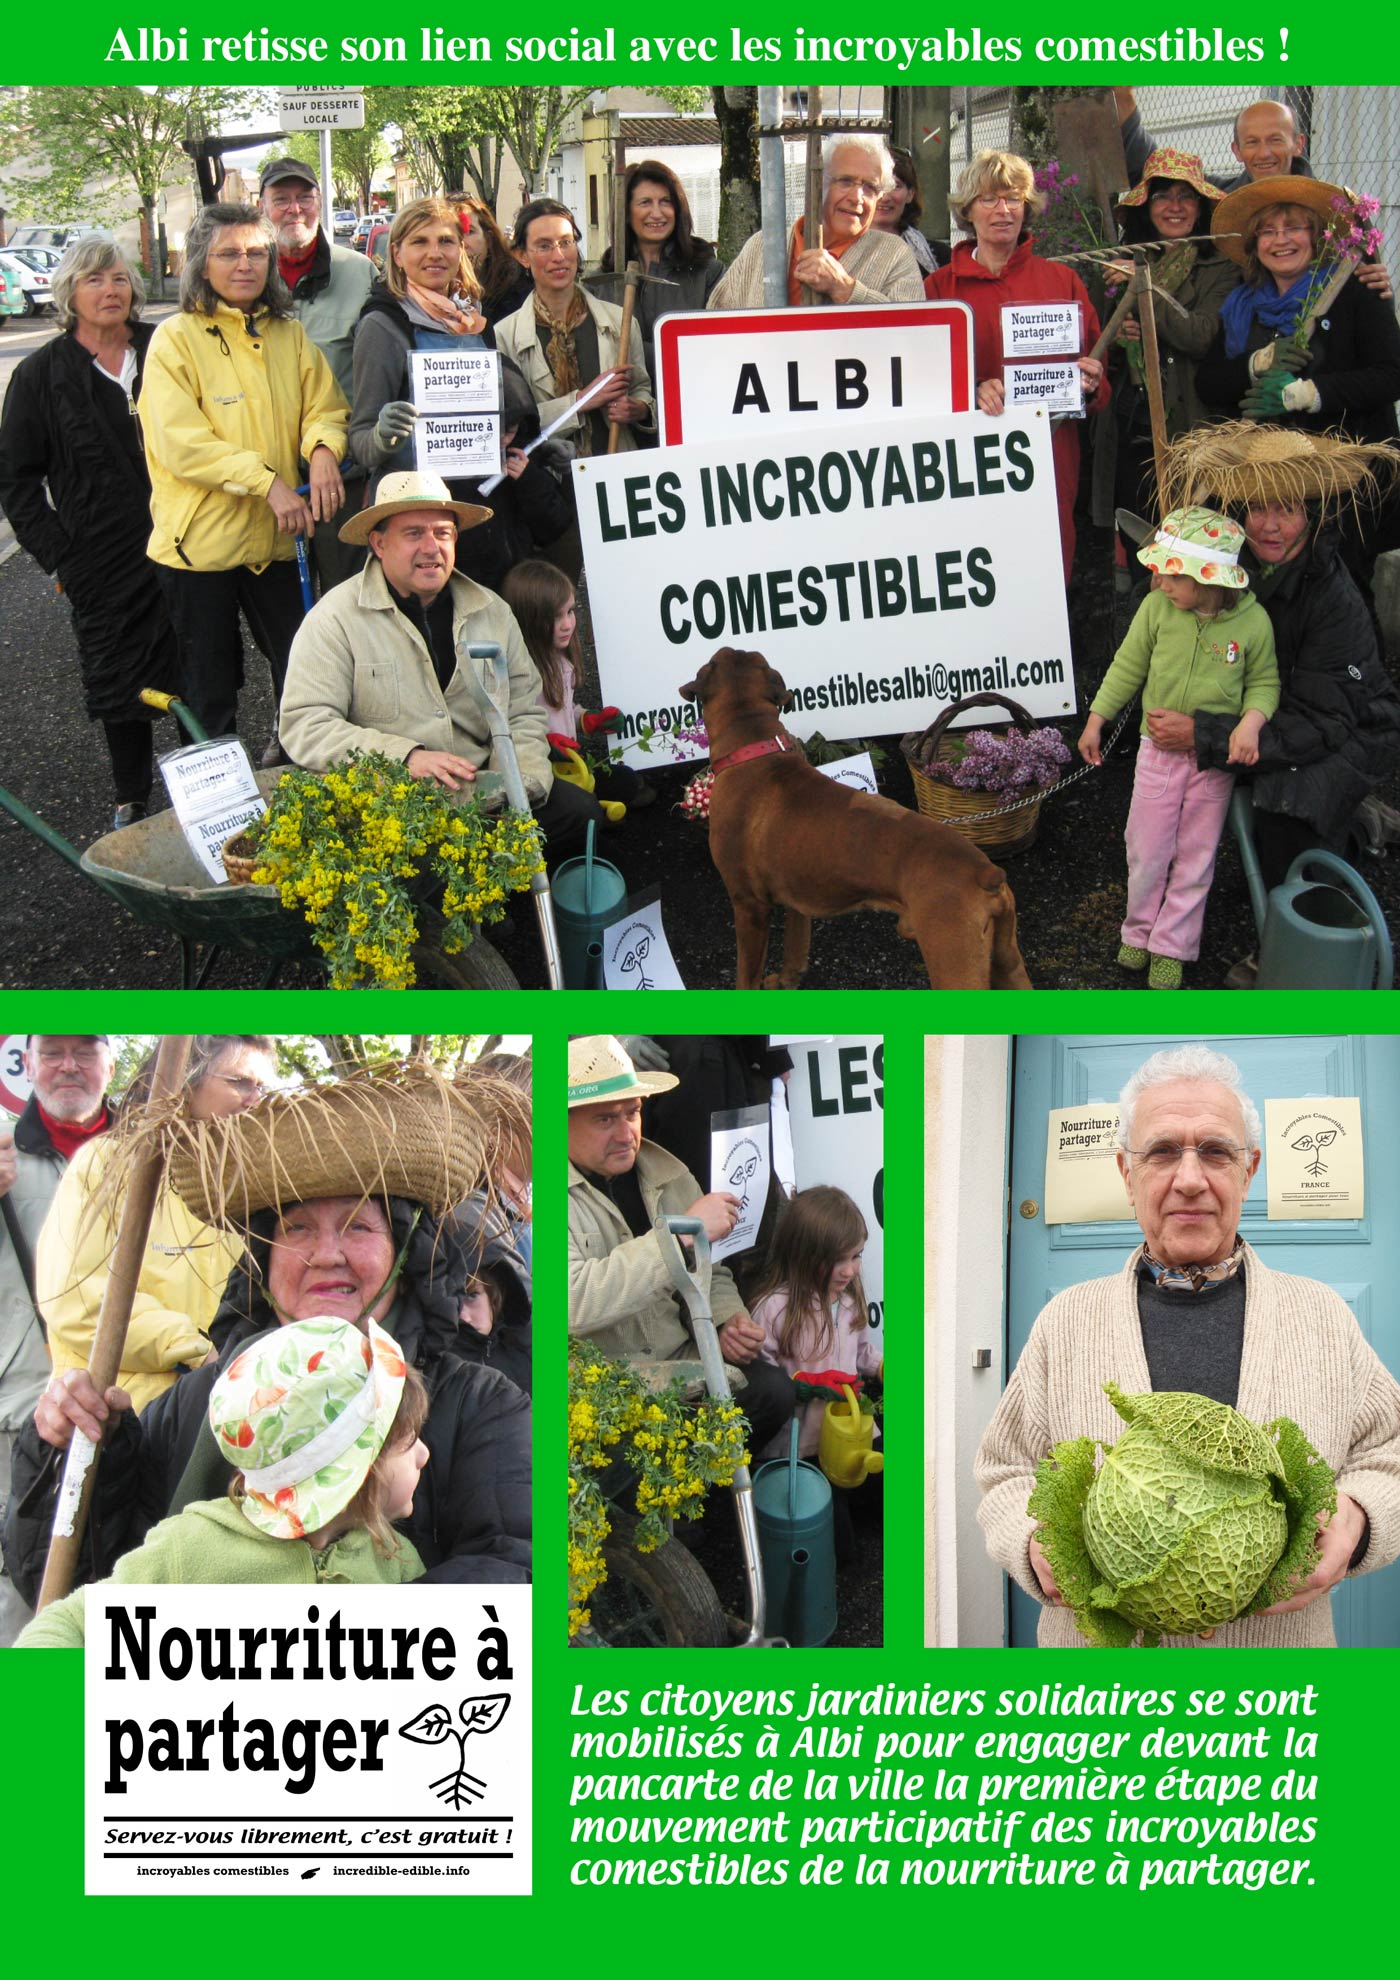 c430_incredible_edible_todmorden_france_tarn_albi_incroyables_comestibles_w1400